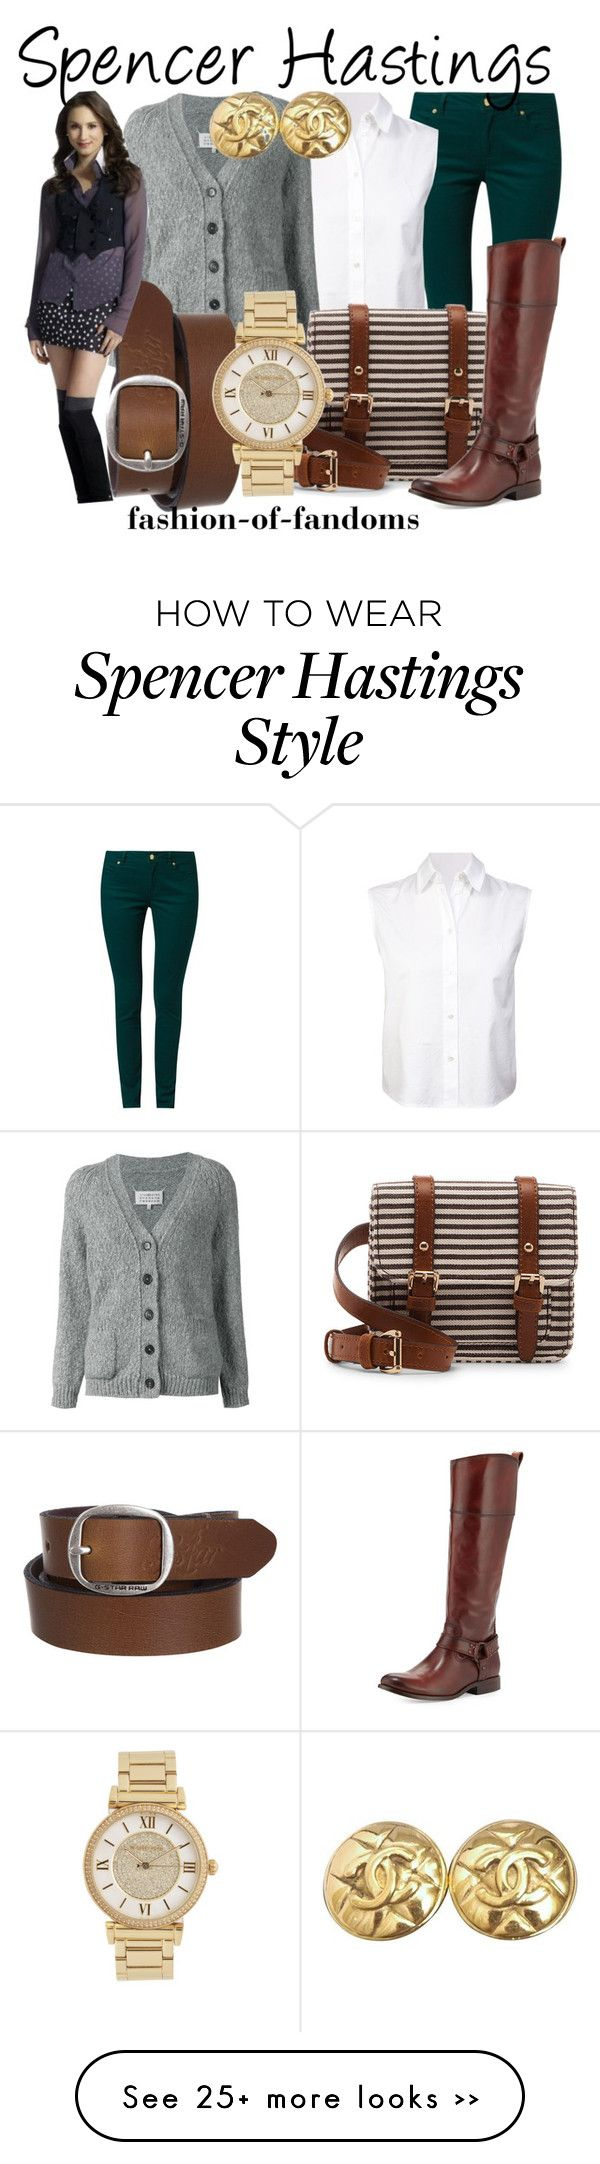 """Spencer Hastings"" by fofandoms on Polyvore"